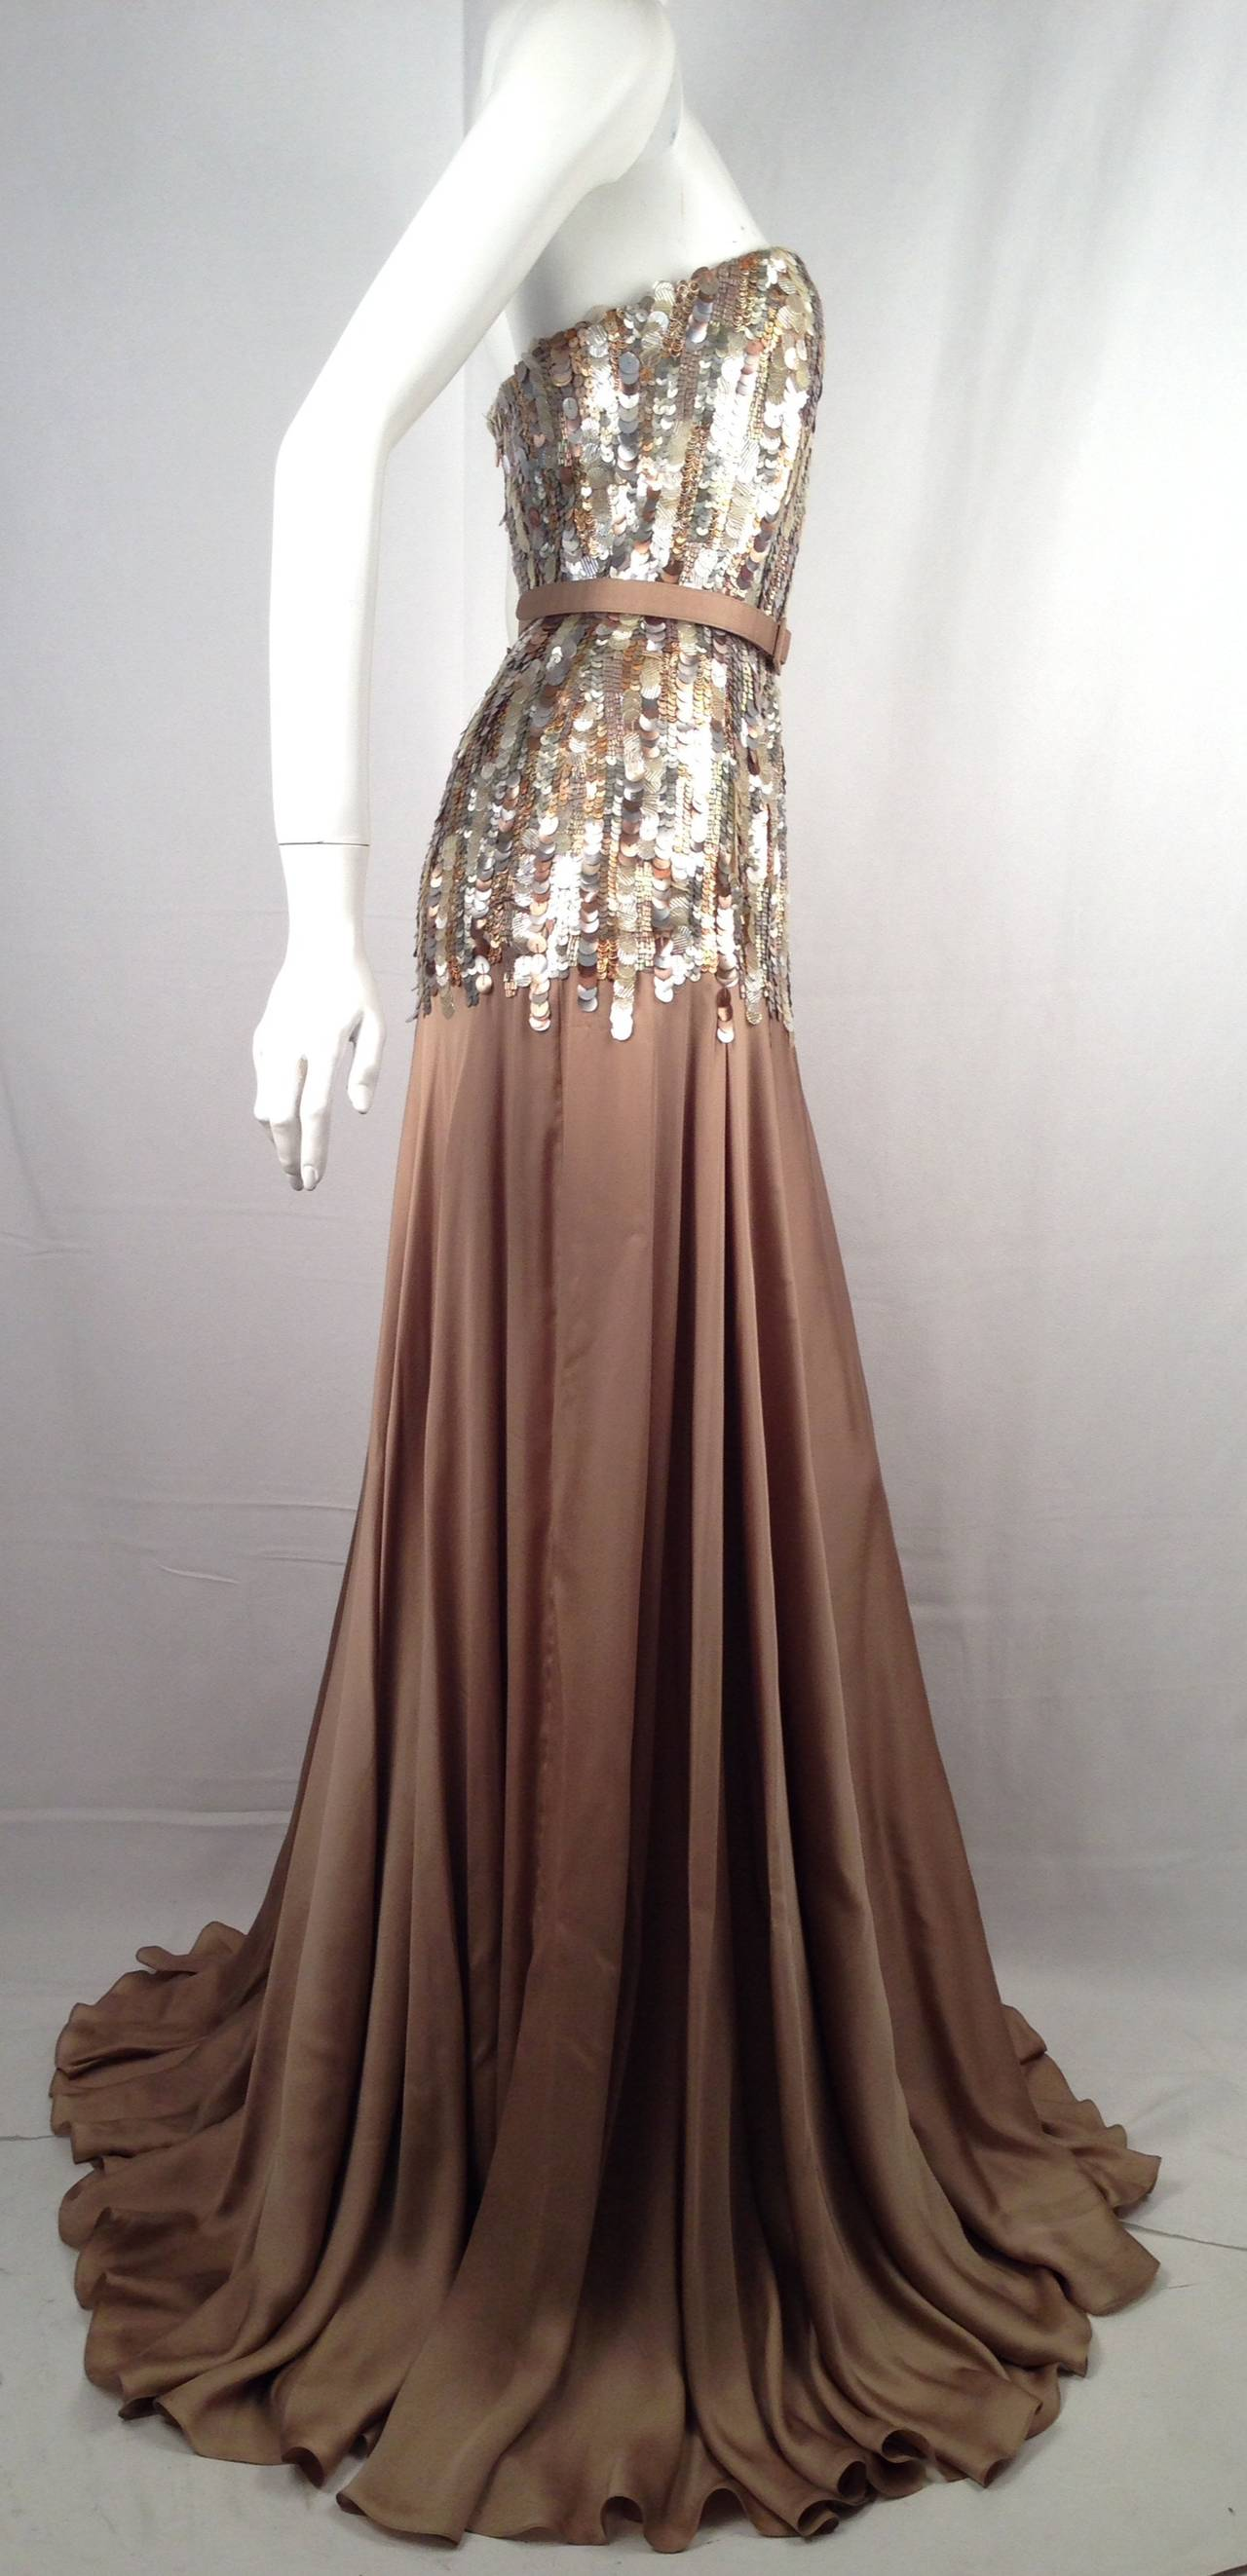 Brand New Strapless Farah Angsana Silk Gown With Sequin and Paillette Bodice 3